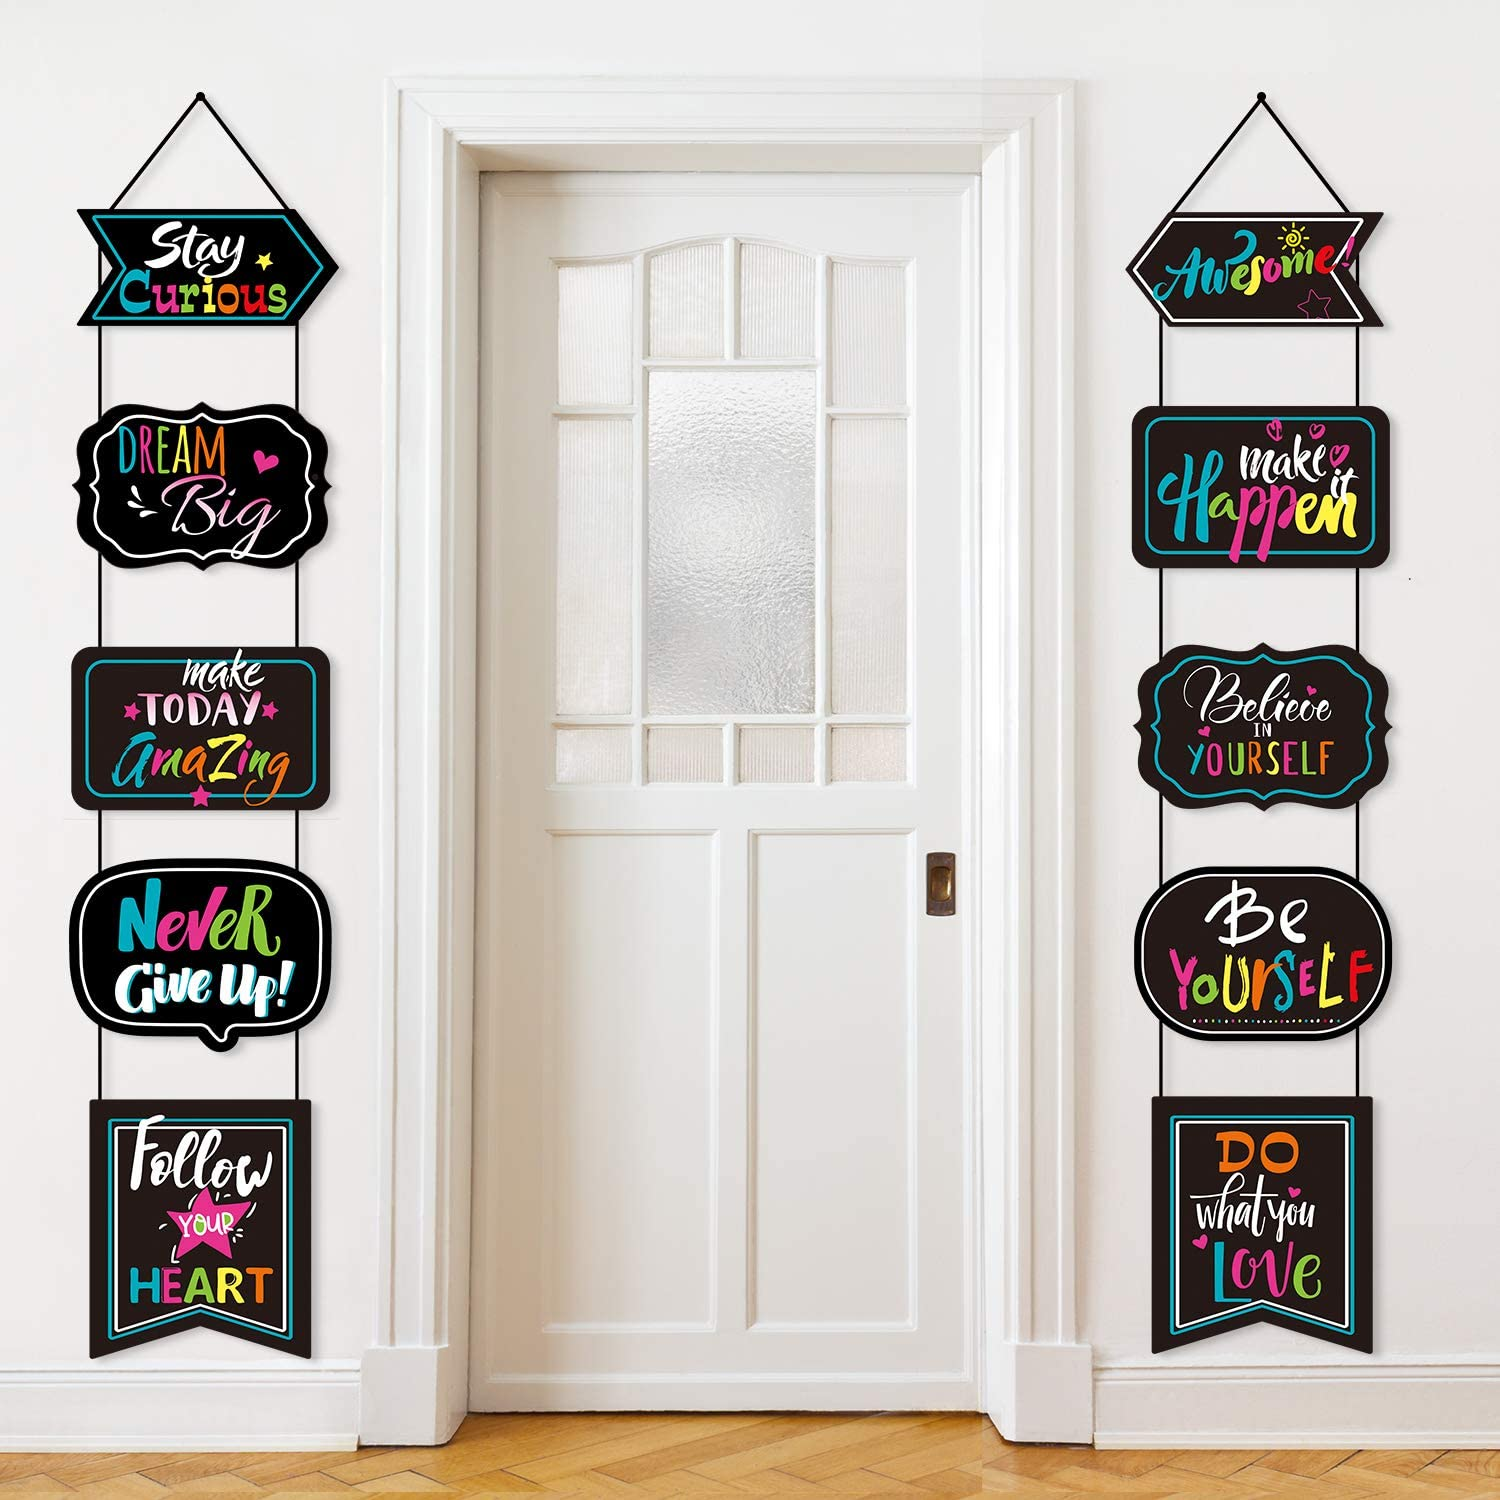 Classroom Decoration Motivational Banner Poster Inspirational Cards Motivation Porch Sign Positive Sayings Accents Cutouts for Students Teacher Educational Bulletin Board Office Home School Nursery